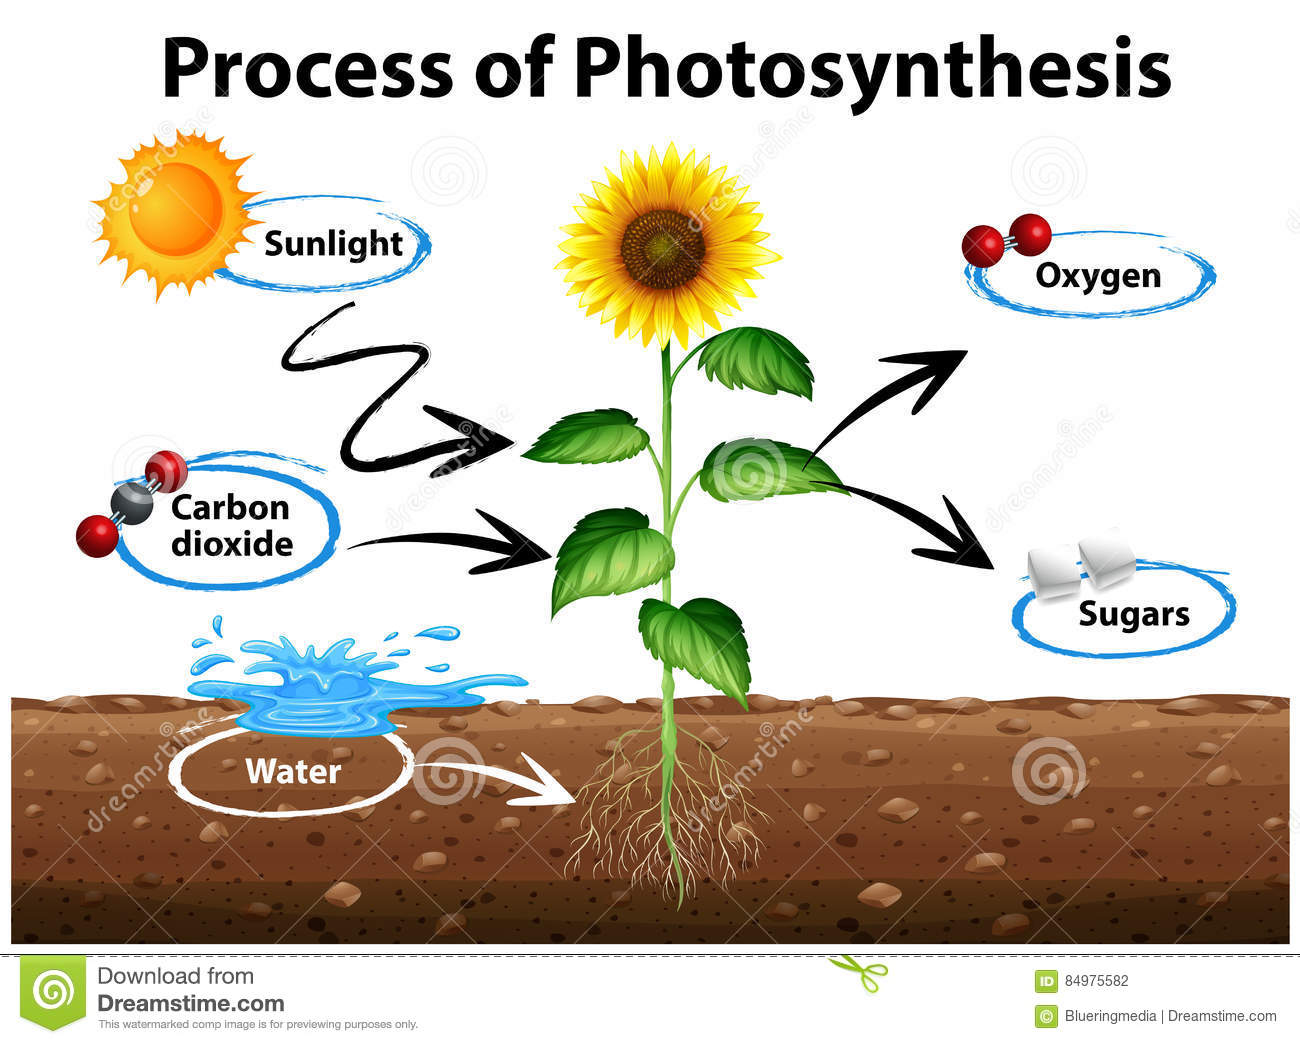 Diagram Zonnebloem En Proces Van Fotosynthese Tonen